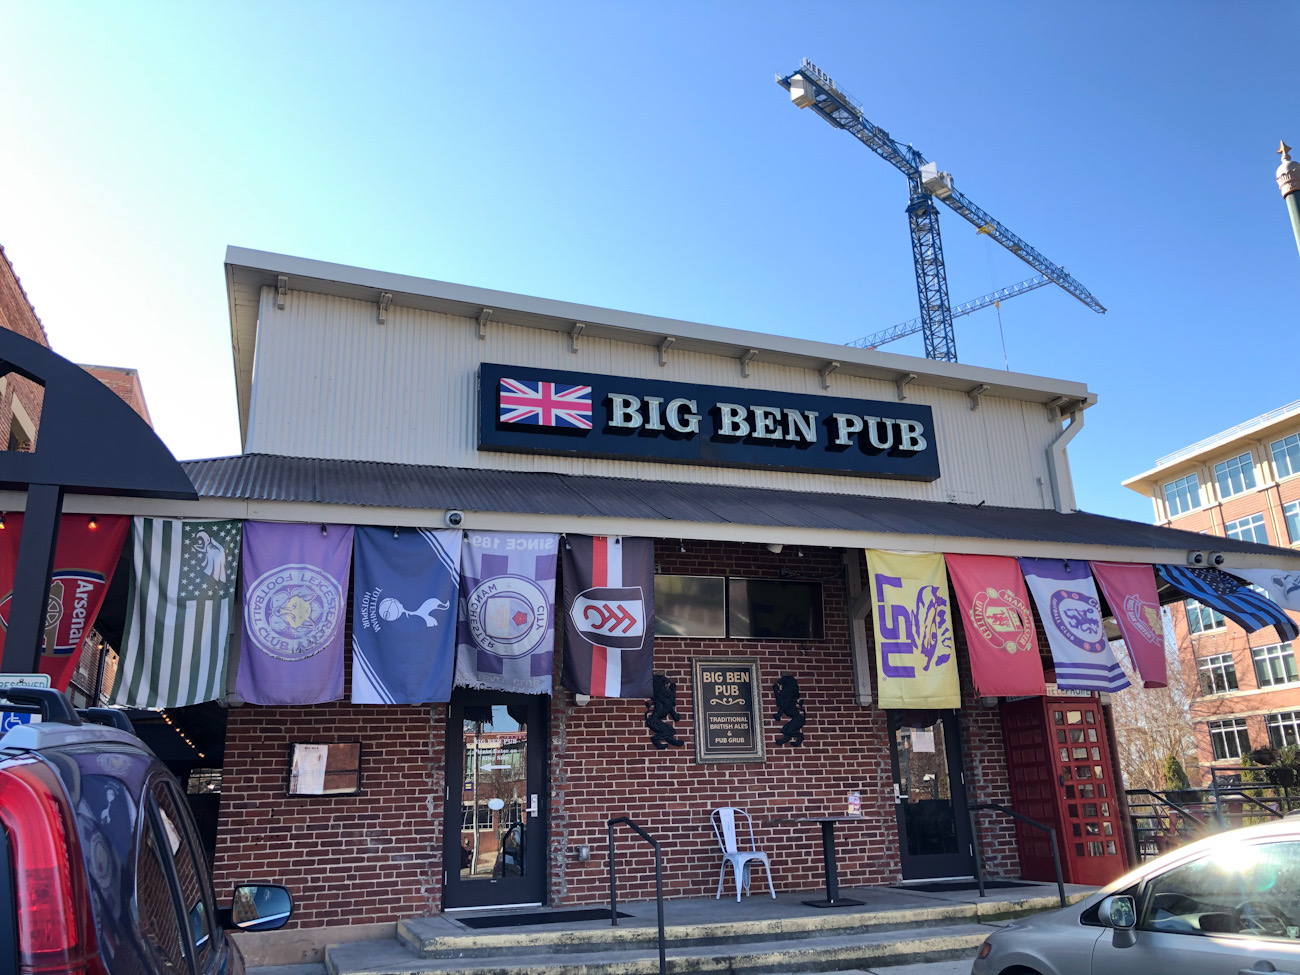 Big Ben Pub (and Charlotte soccer fans) will move to the former Carpe Diem space